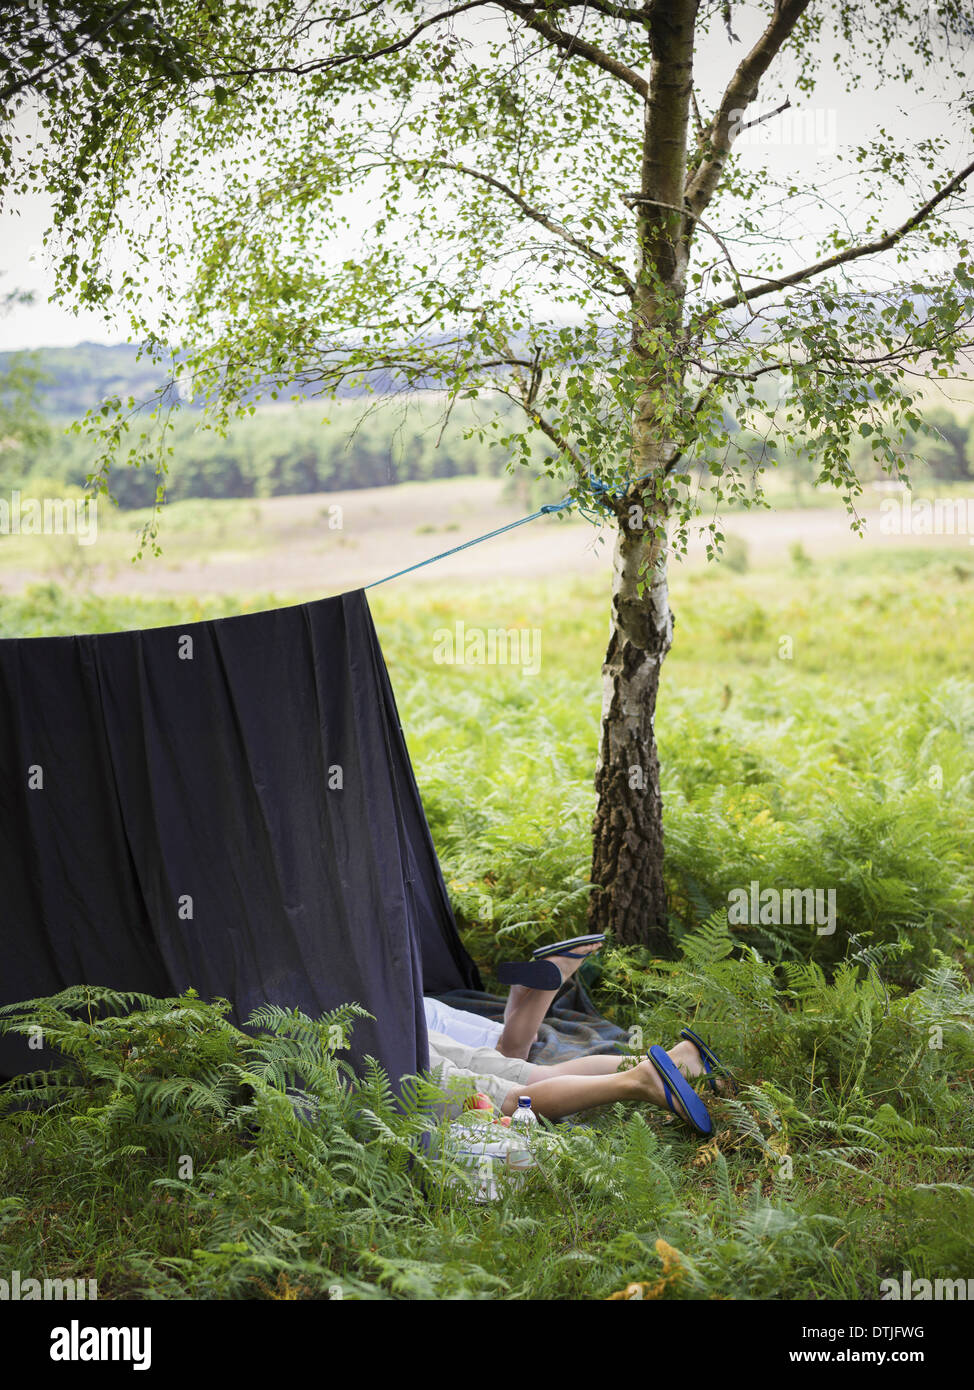 Two boys camping in the New Forest lying under a canvas shelter Hampshire England - Stock Image